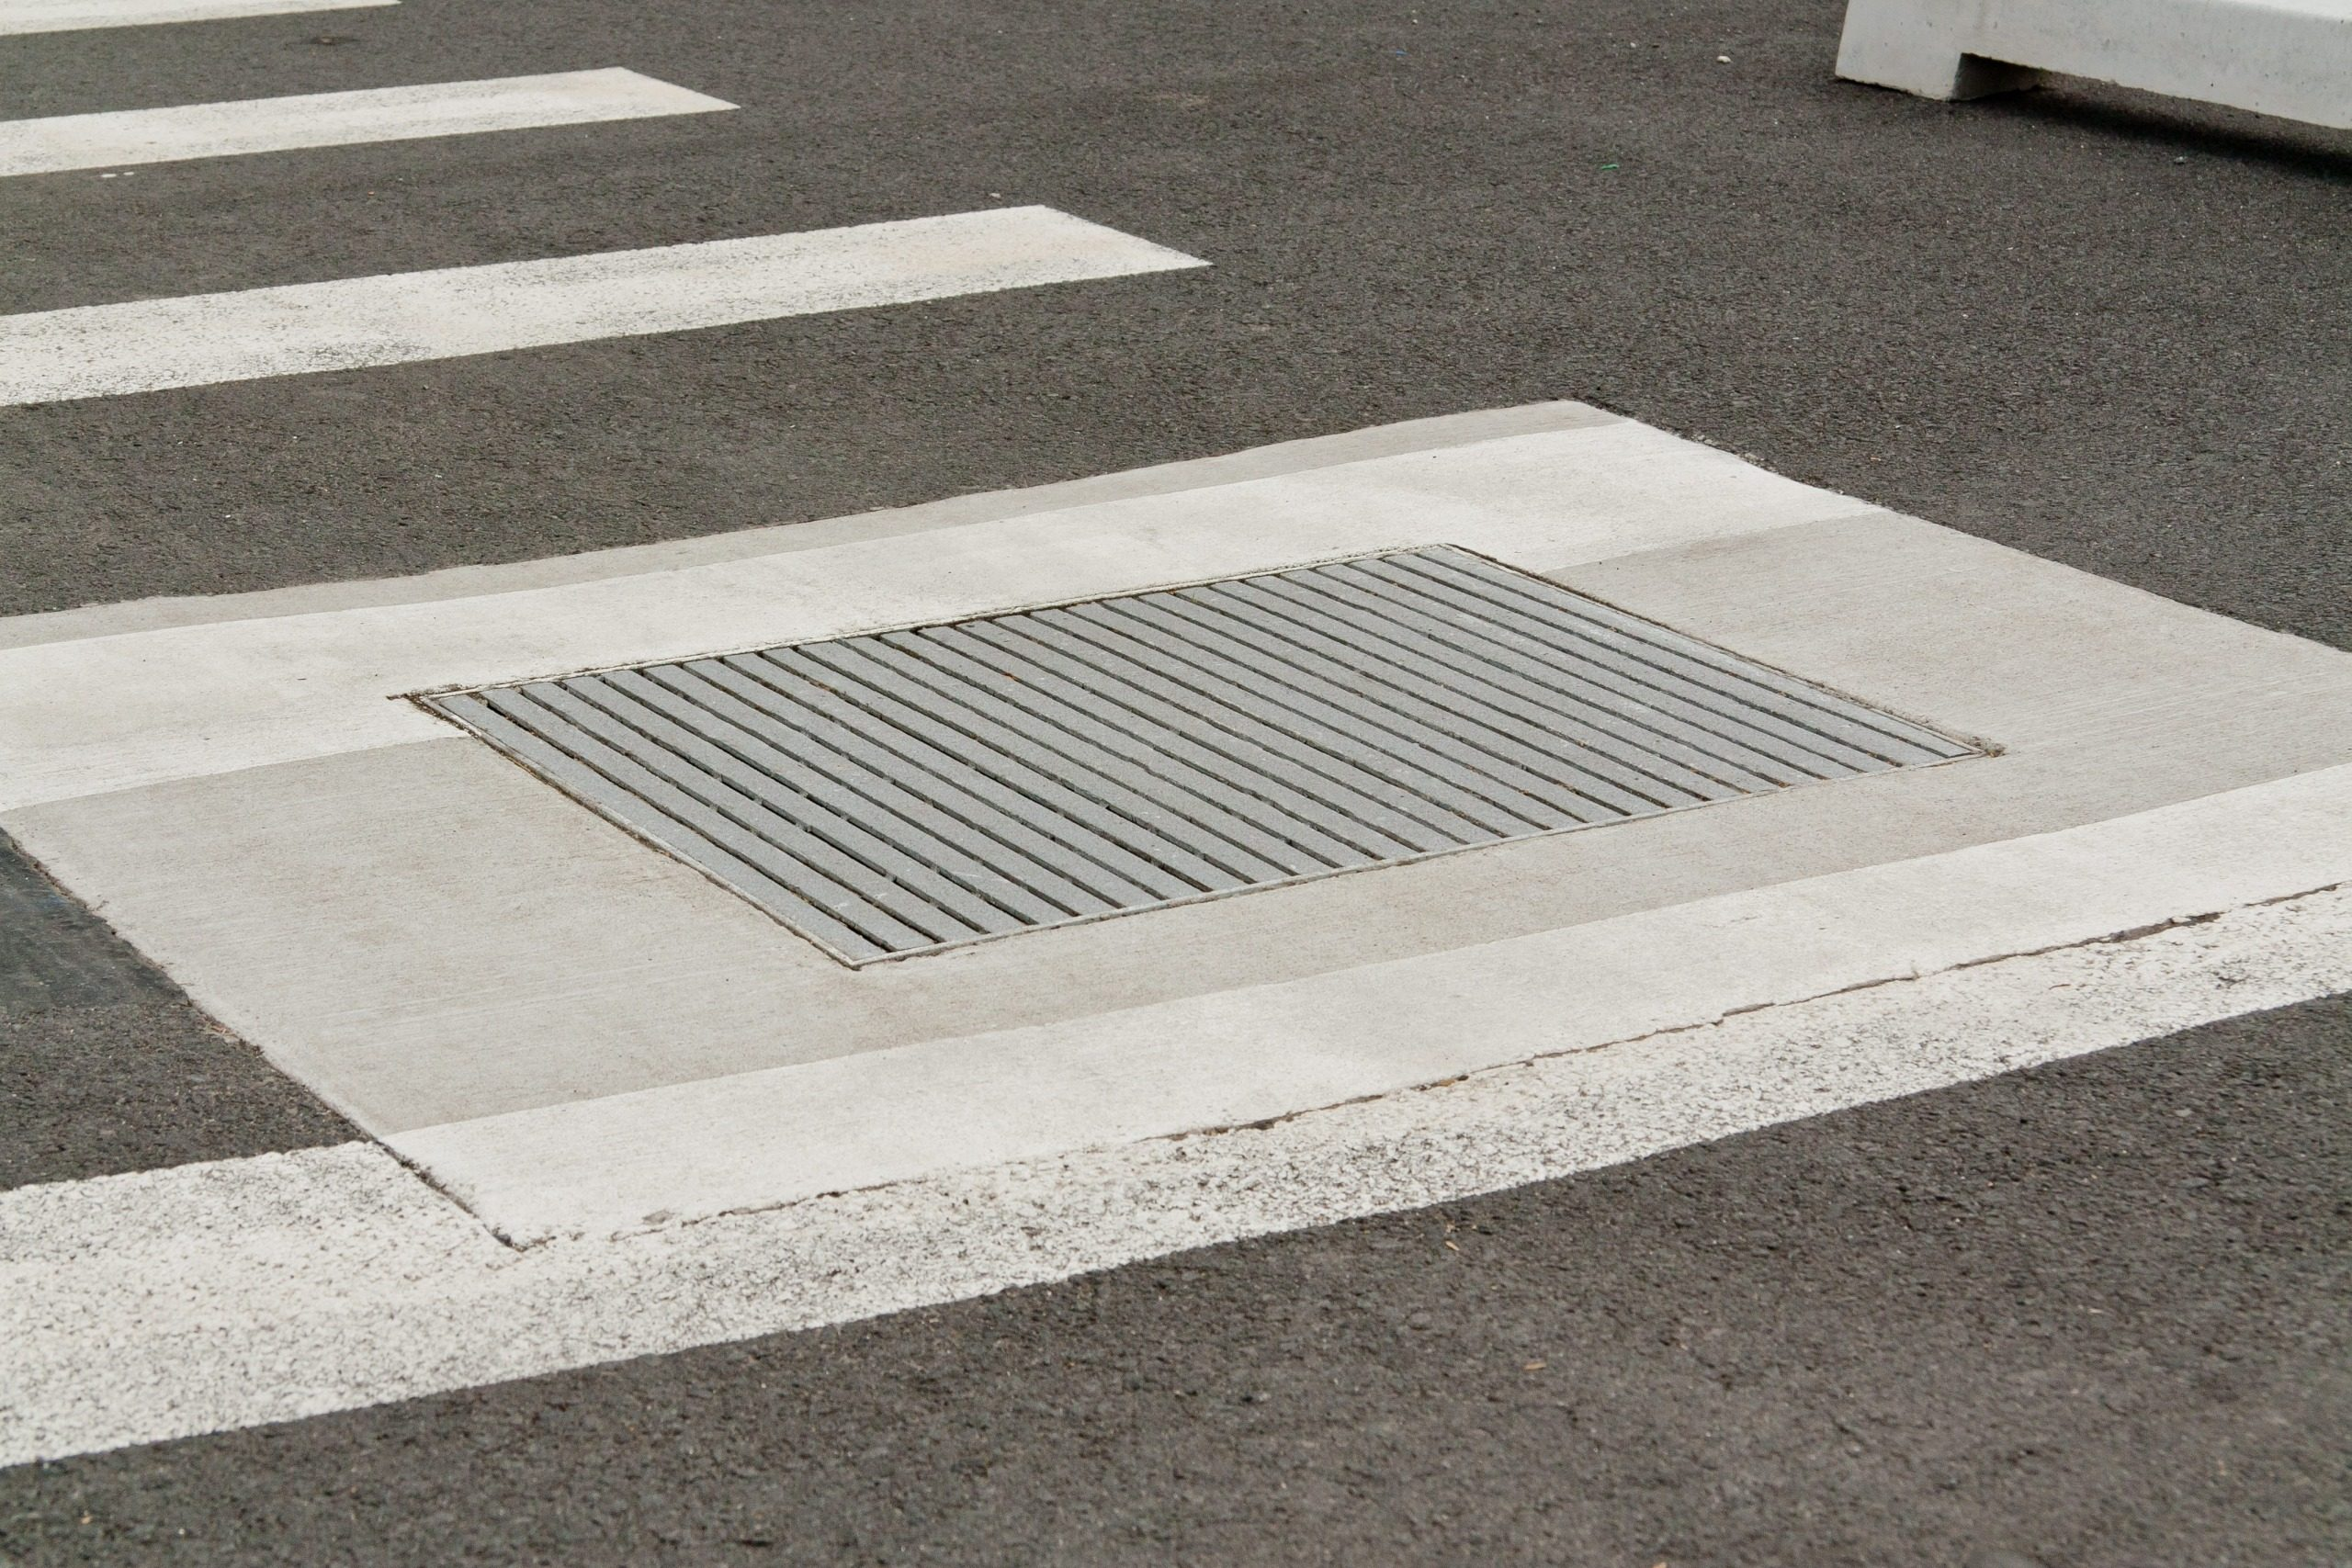 Galvanised Heelproof Grate And Frame Hynds Pipe Systems